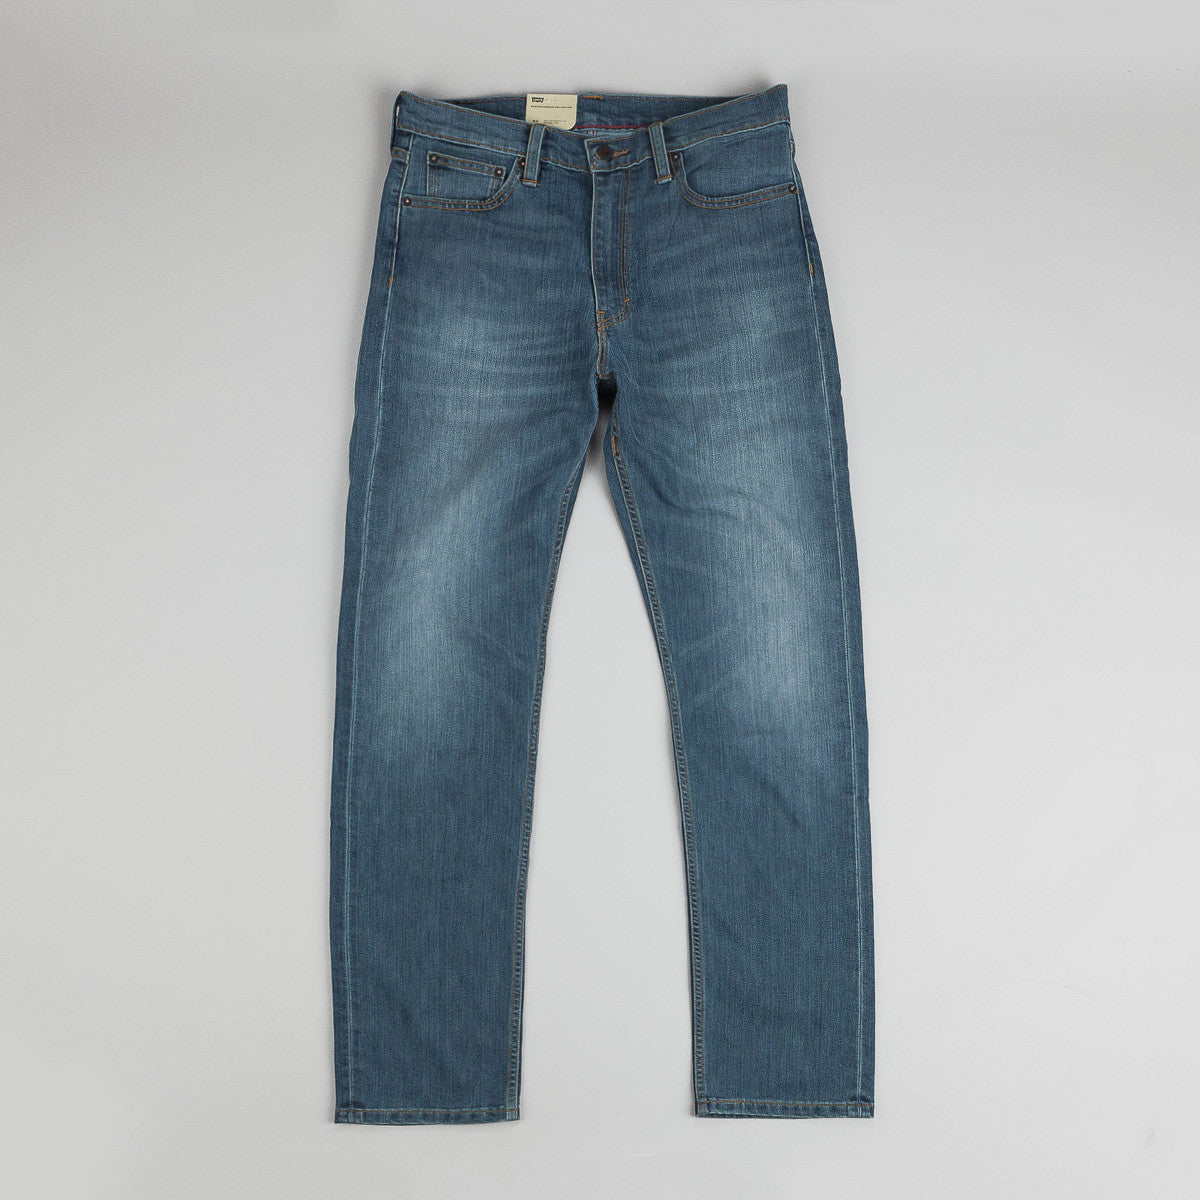 Levi's'® Skate 504 Straight Jeans Avenues